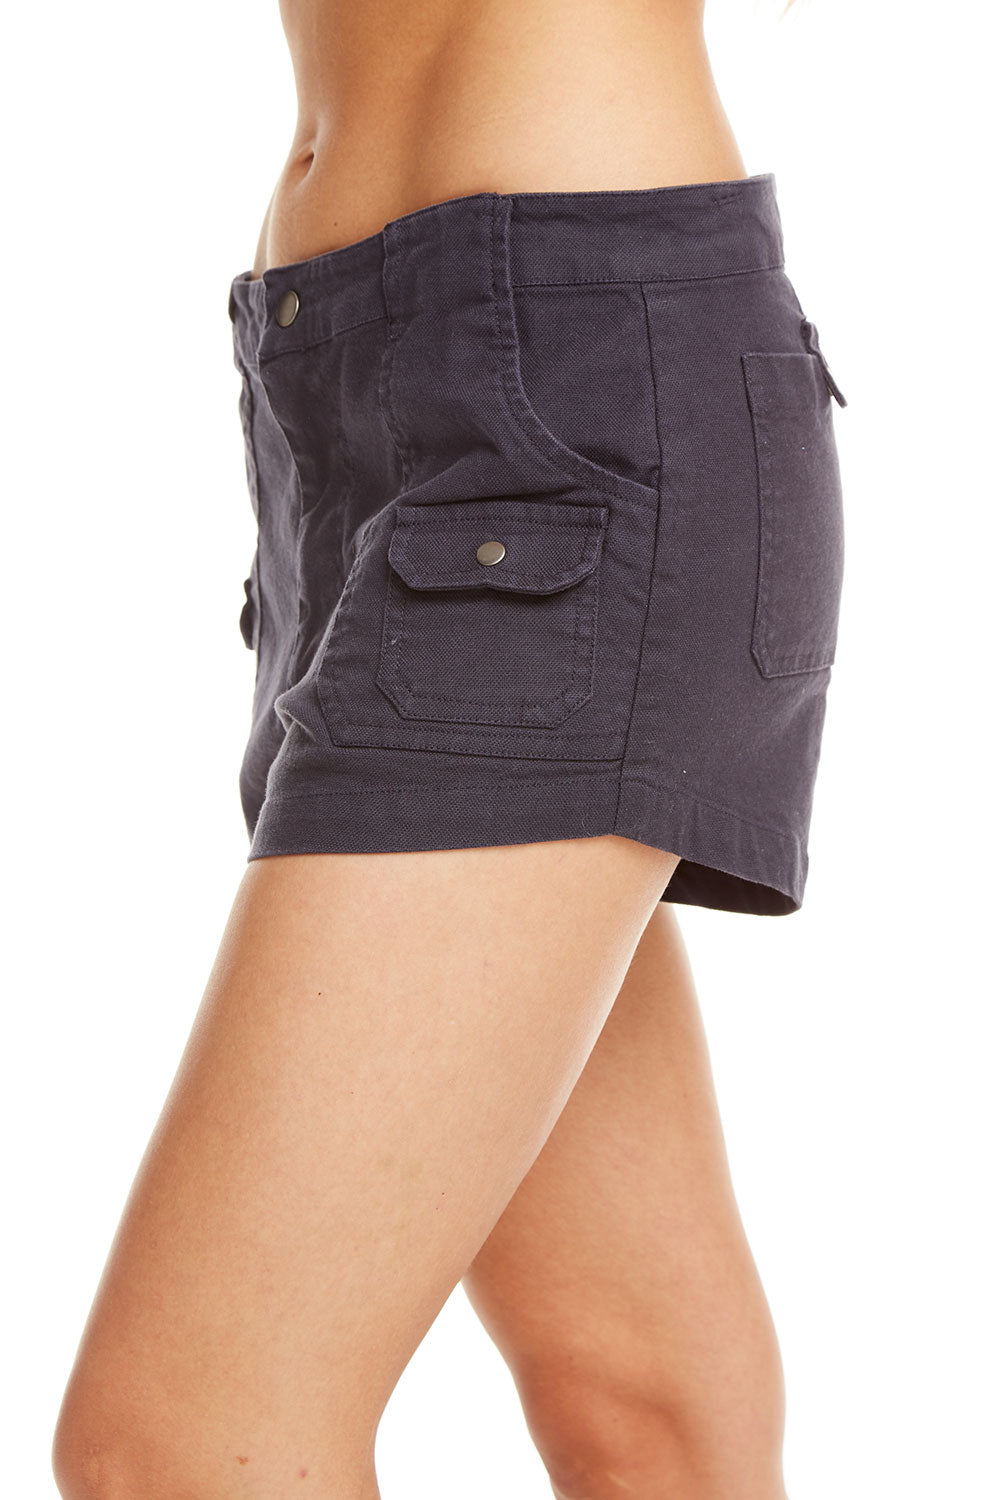 7a552d2728 Vintage Canvas Cargo Shorts, WOMENS, chaserbrand.com,chaser clothing,chaser  apparel